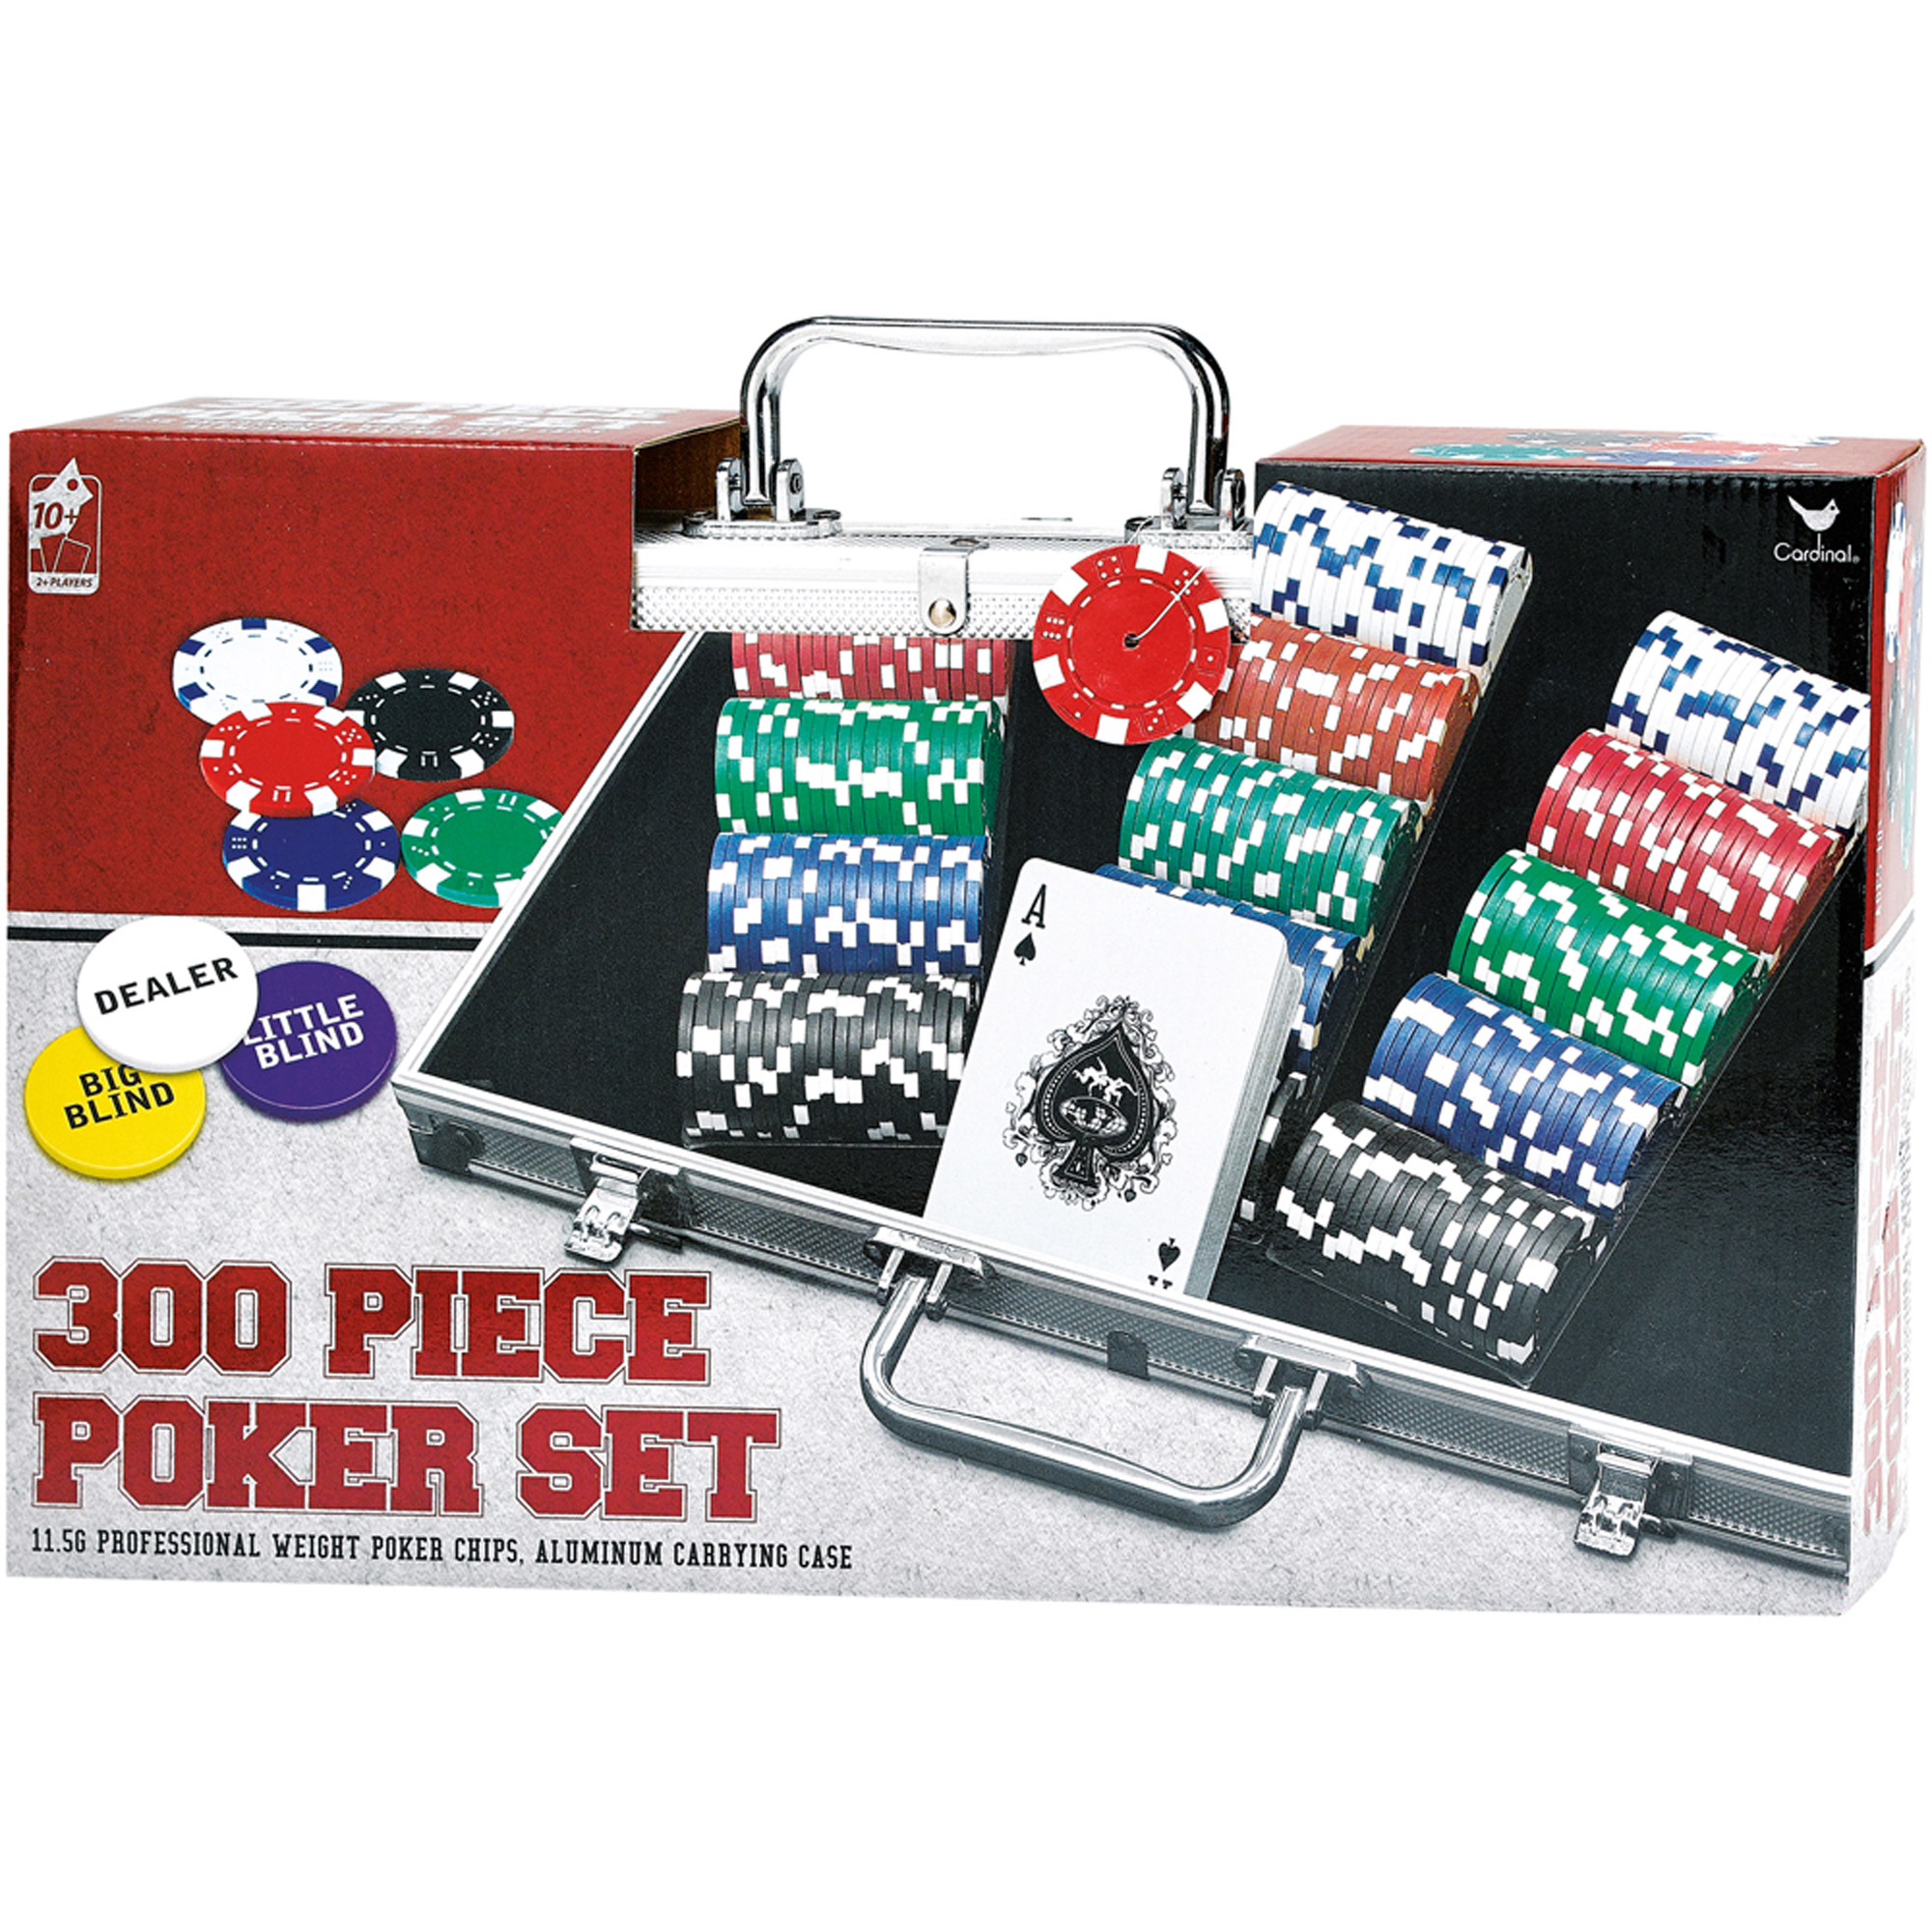 300 Piece Poker Set in Aluminum Carrying Case by Cardinal